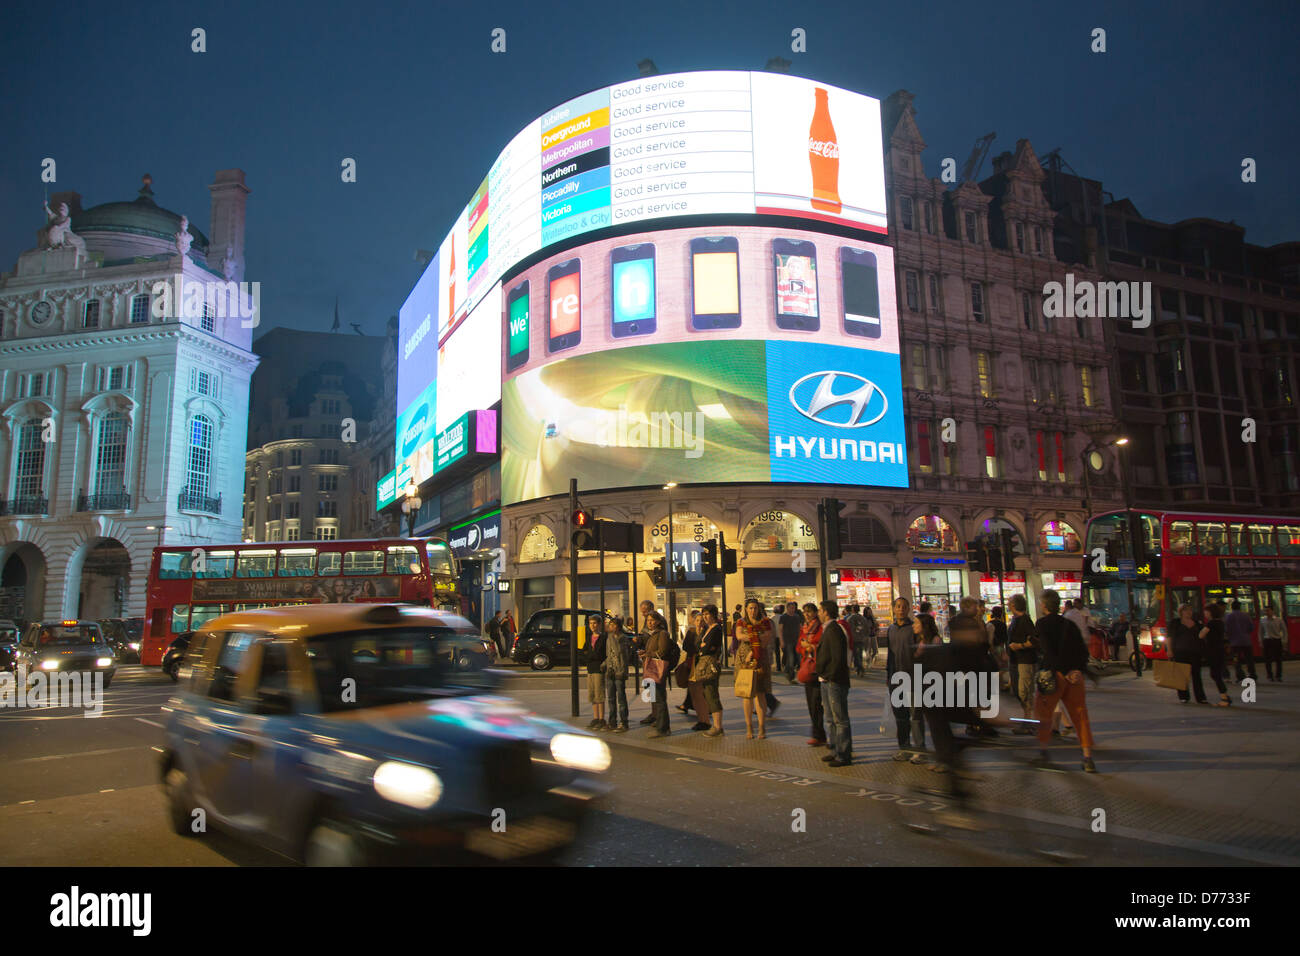 London, Great √ übritannien, neon signs at Piccadilly Circus - Stock Image